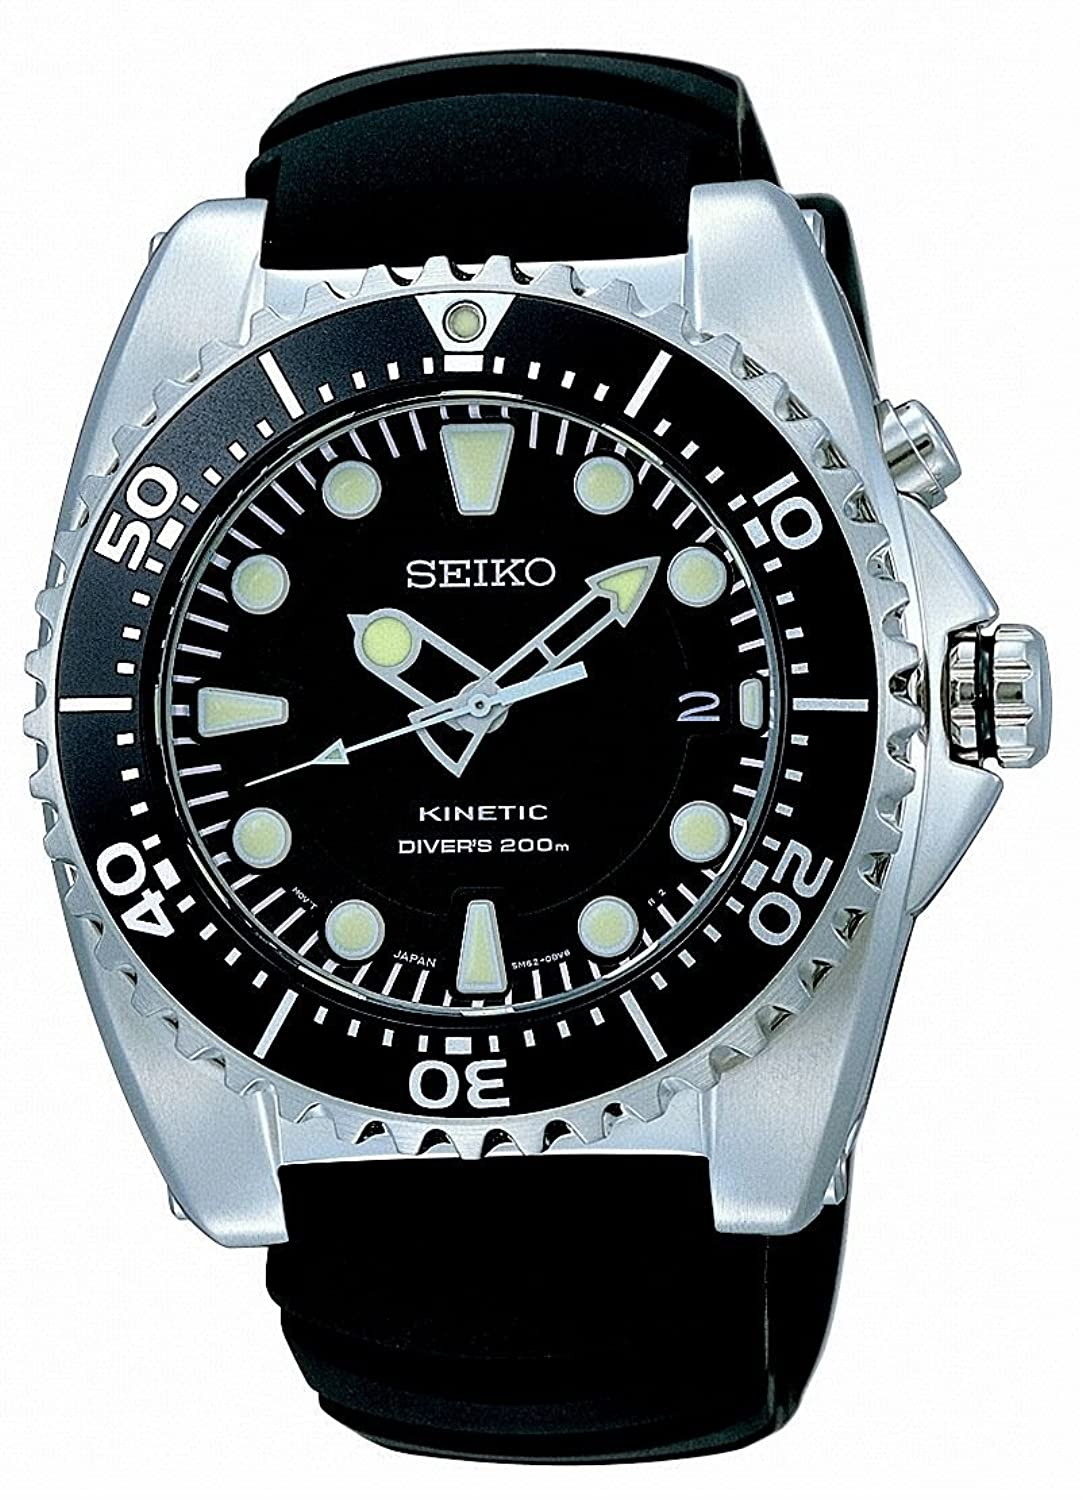 seiko men s automatic watch divers ska371p2 plastic strap seiko men s automatic watch divers ska371p2 plastic strap seiko amazon co uk watches